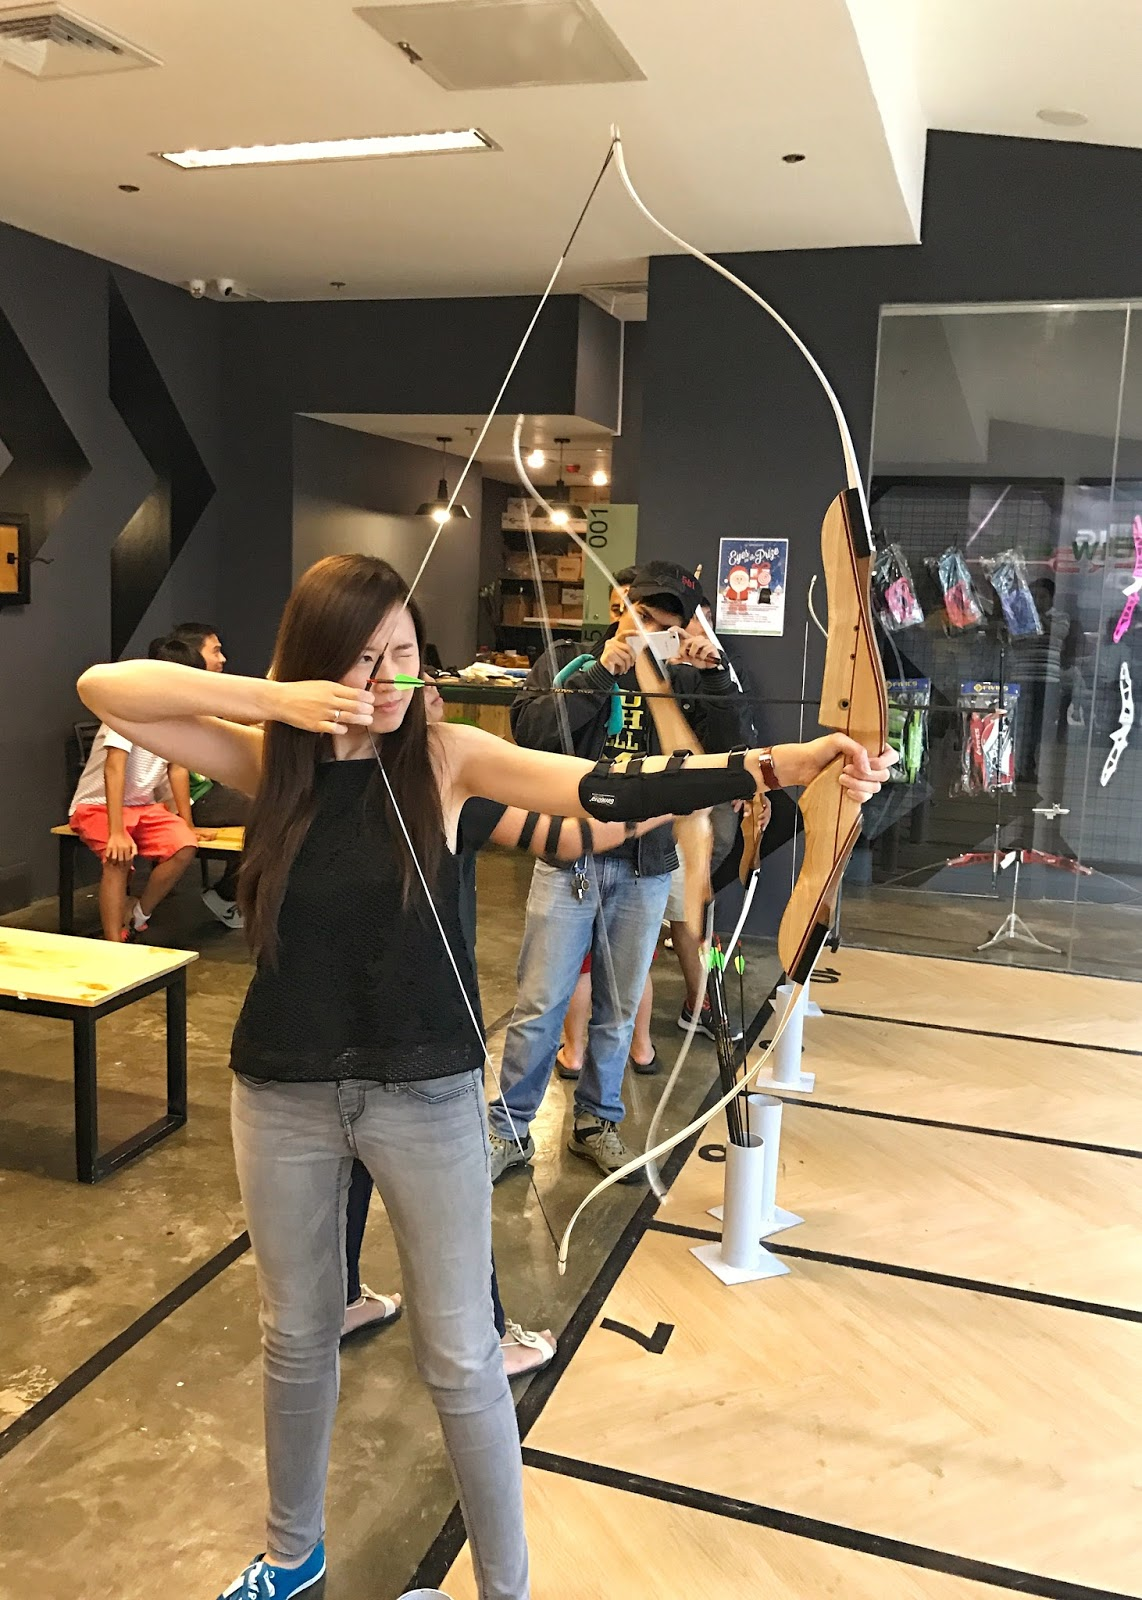 Archery 101: Arrowland by Gandiva - What Mary Loves